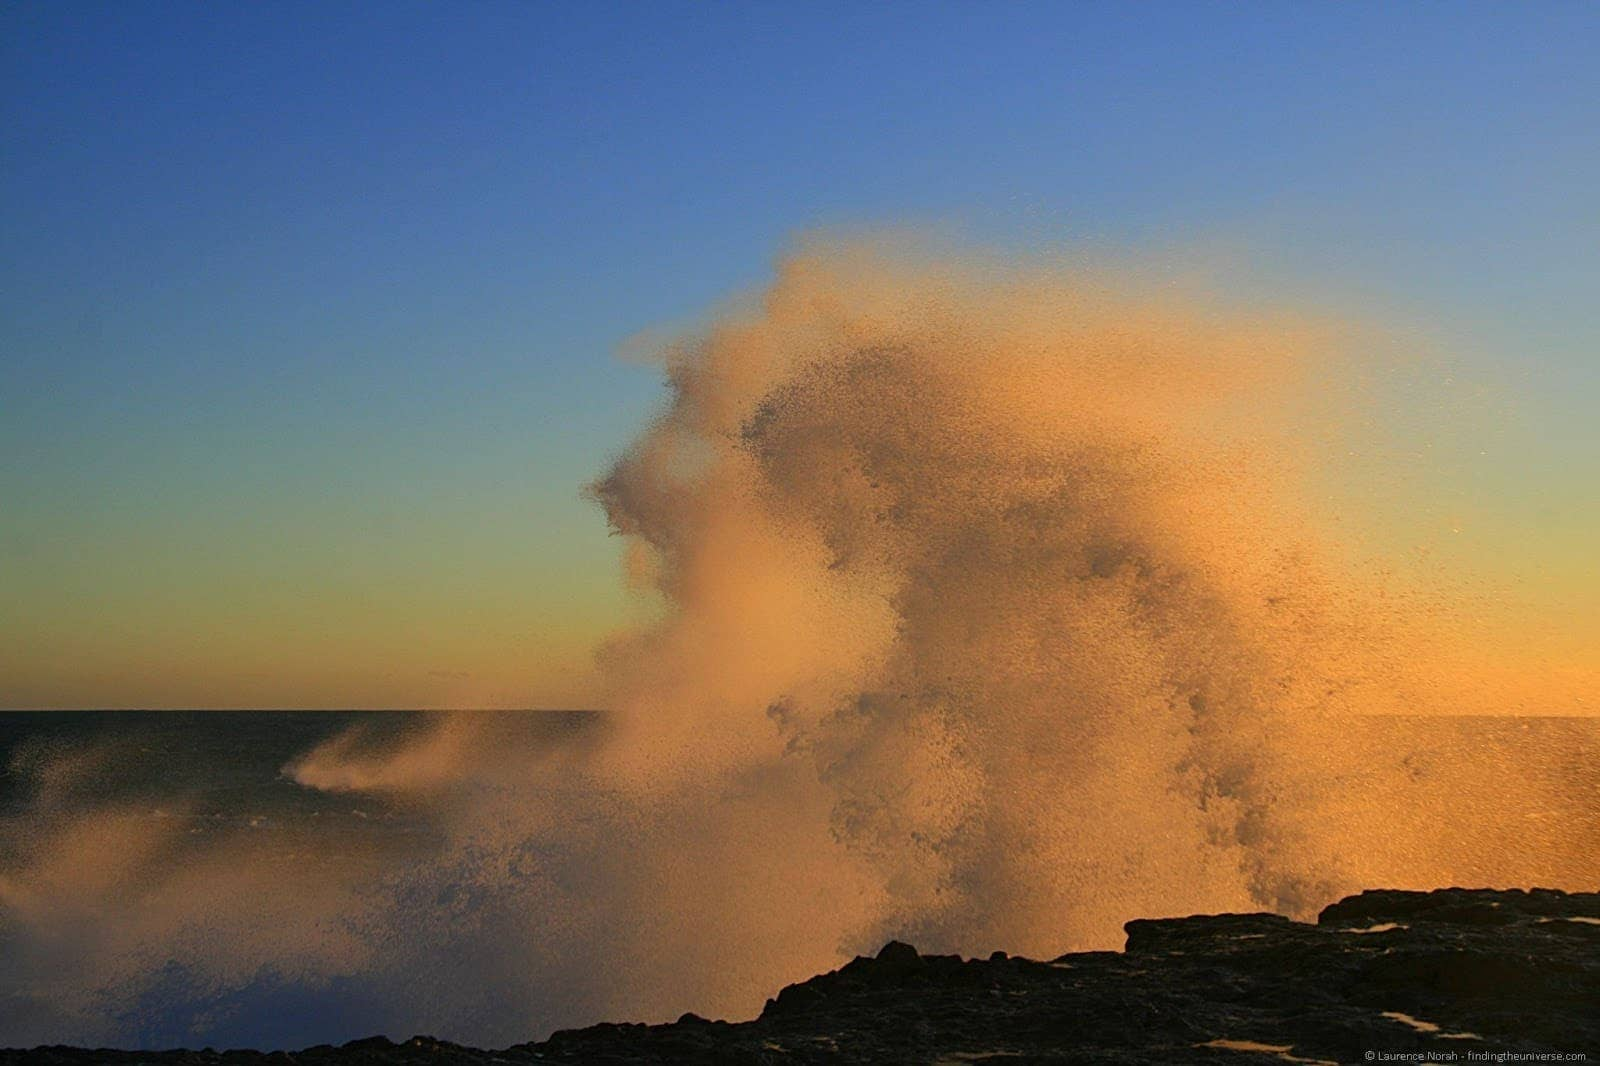 Wave crashing at sunset - Western Australia - Australia